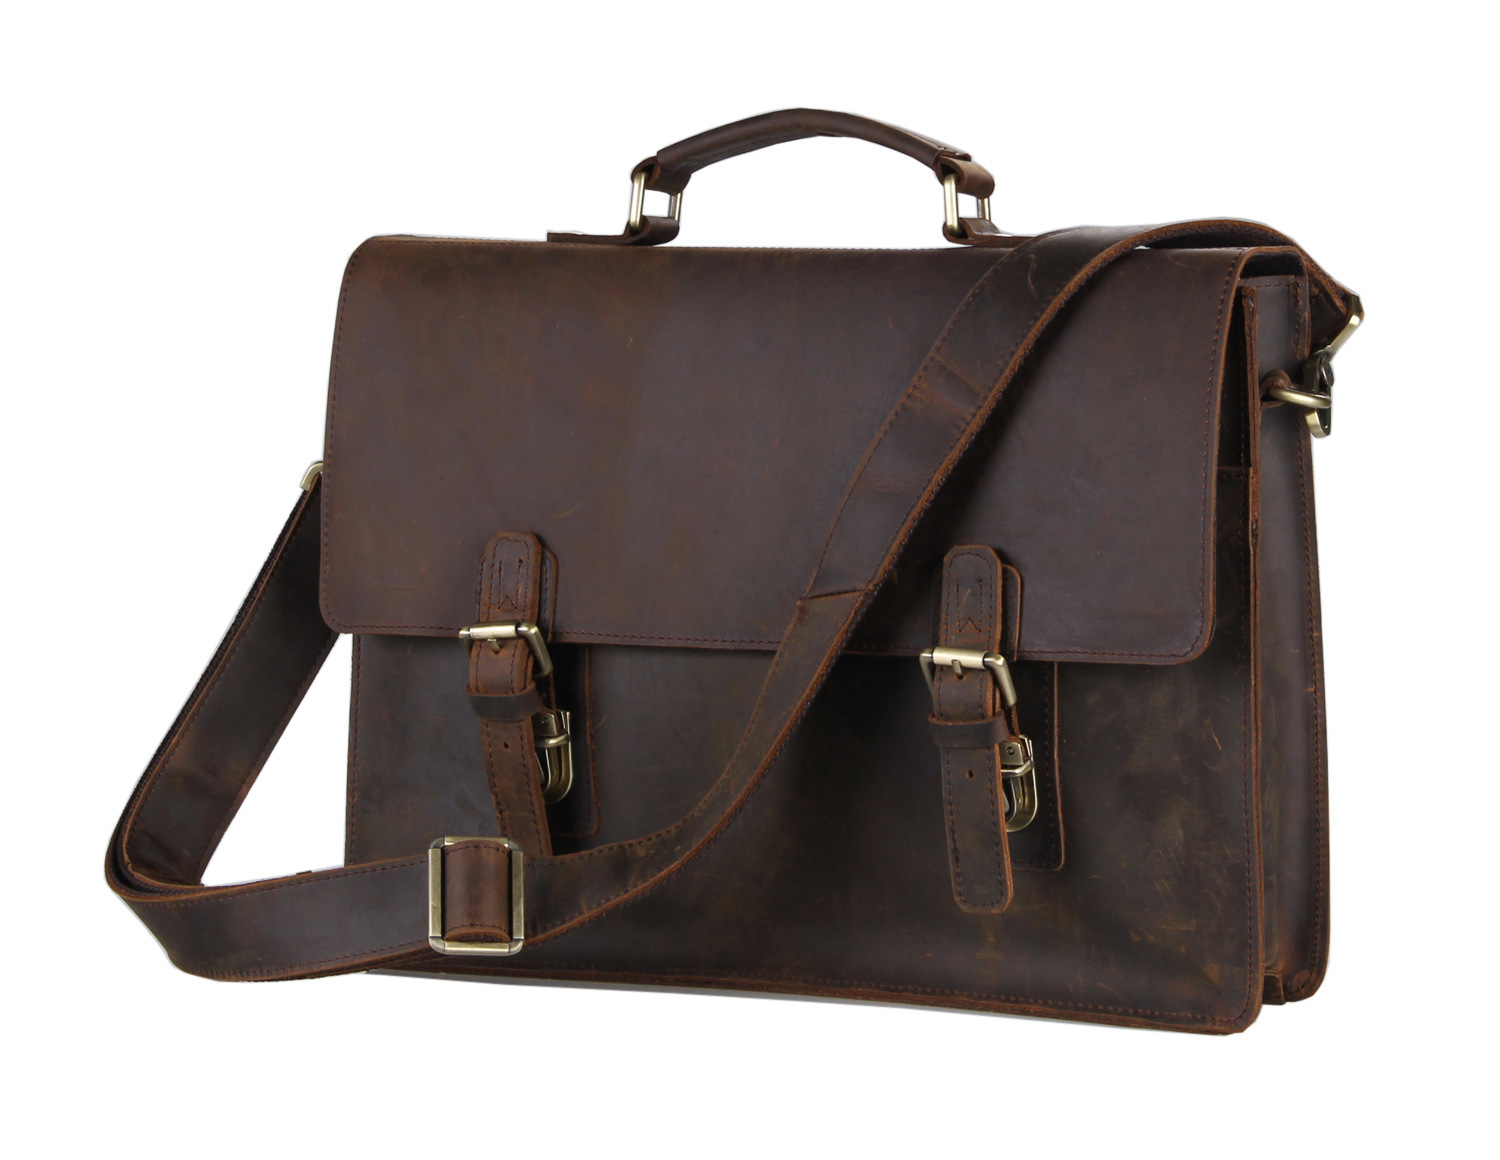 2016 Men Messenger Bags Vintage Leather Briefcase Handbags Business Bag Crazy Horse Genuine Portfolio Male Laptop Office xiyuan genuine leather handbag men messenger bags male briefcase handbags man laptop bags portfolio shoulder crossbody bag brown